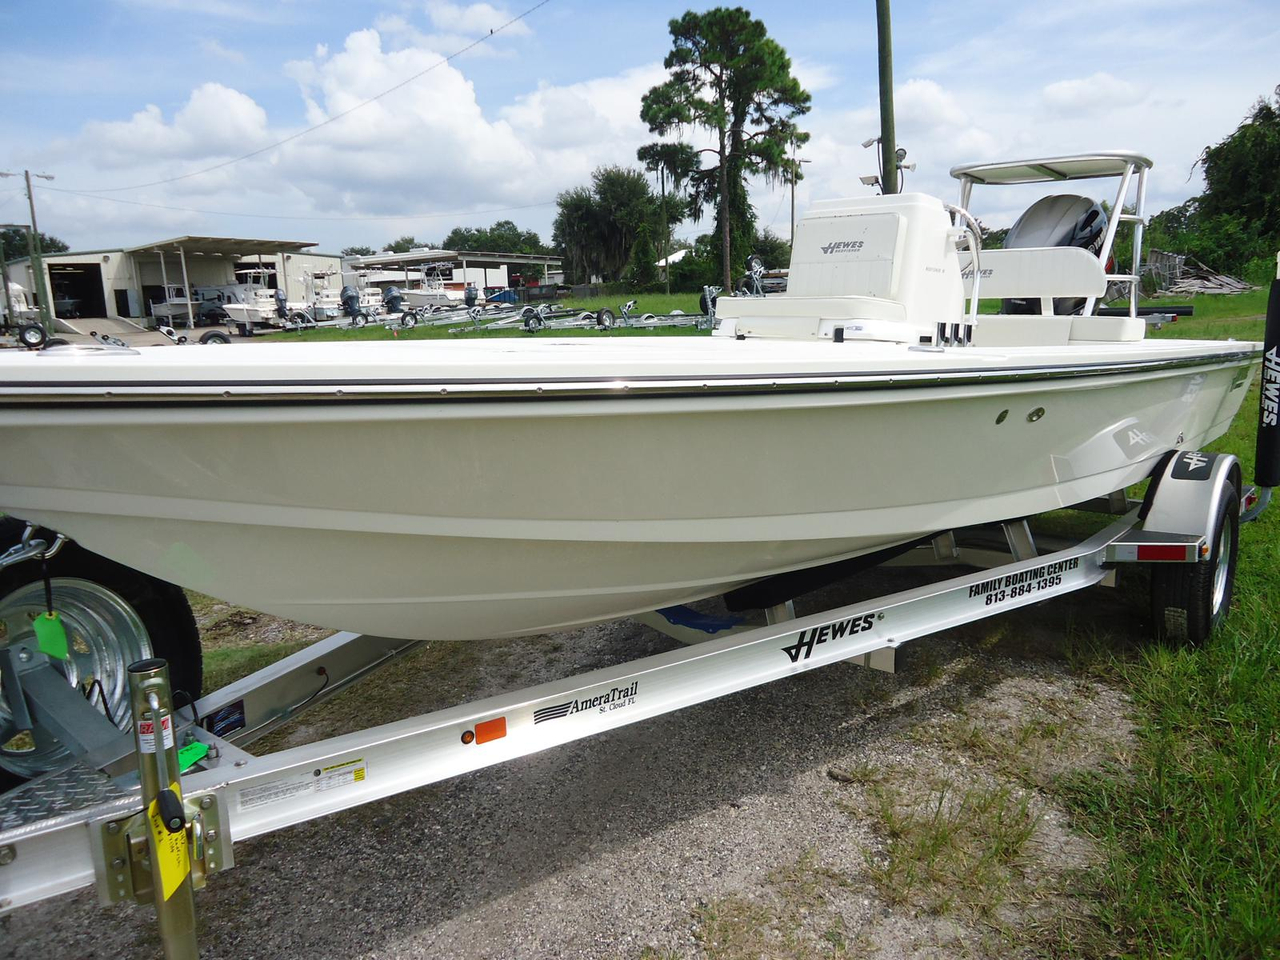 2016 new hewes redfisher 18 flats fishing boat for sale for Flats fishing boats